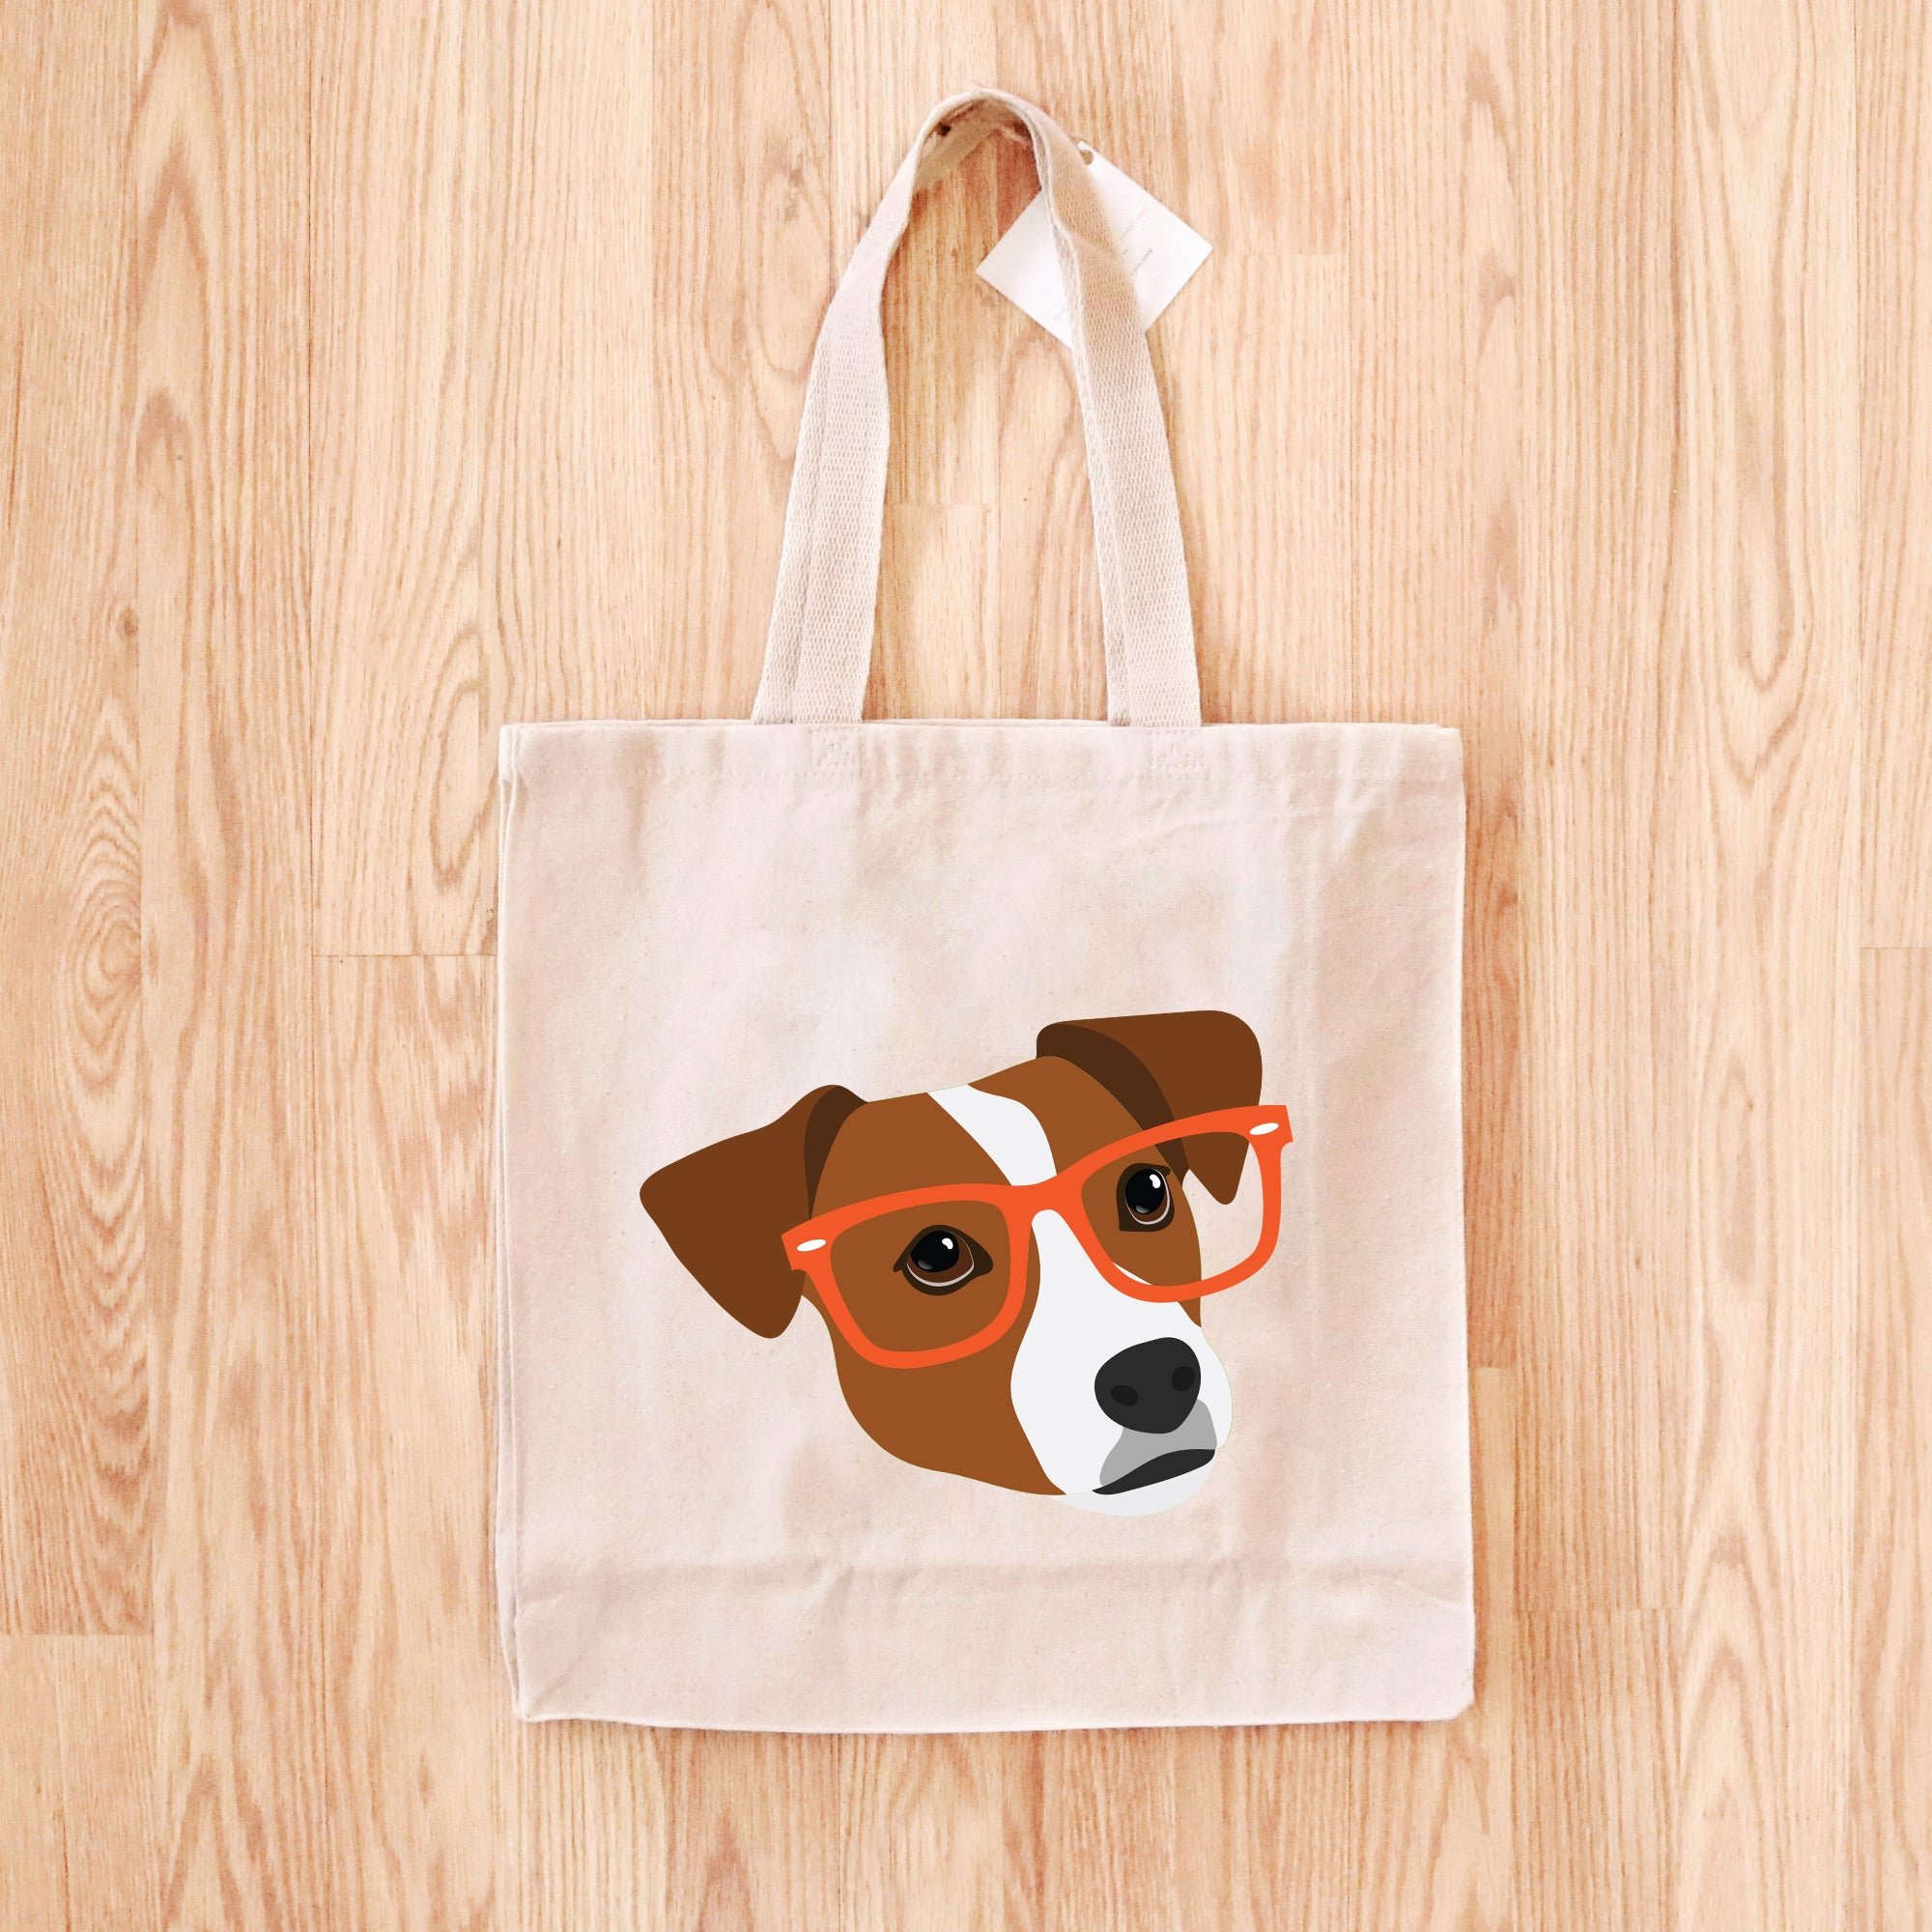 Jack Russell Terrier with Glasses Tote Bag